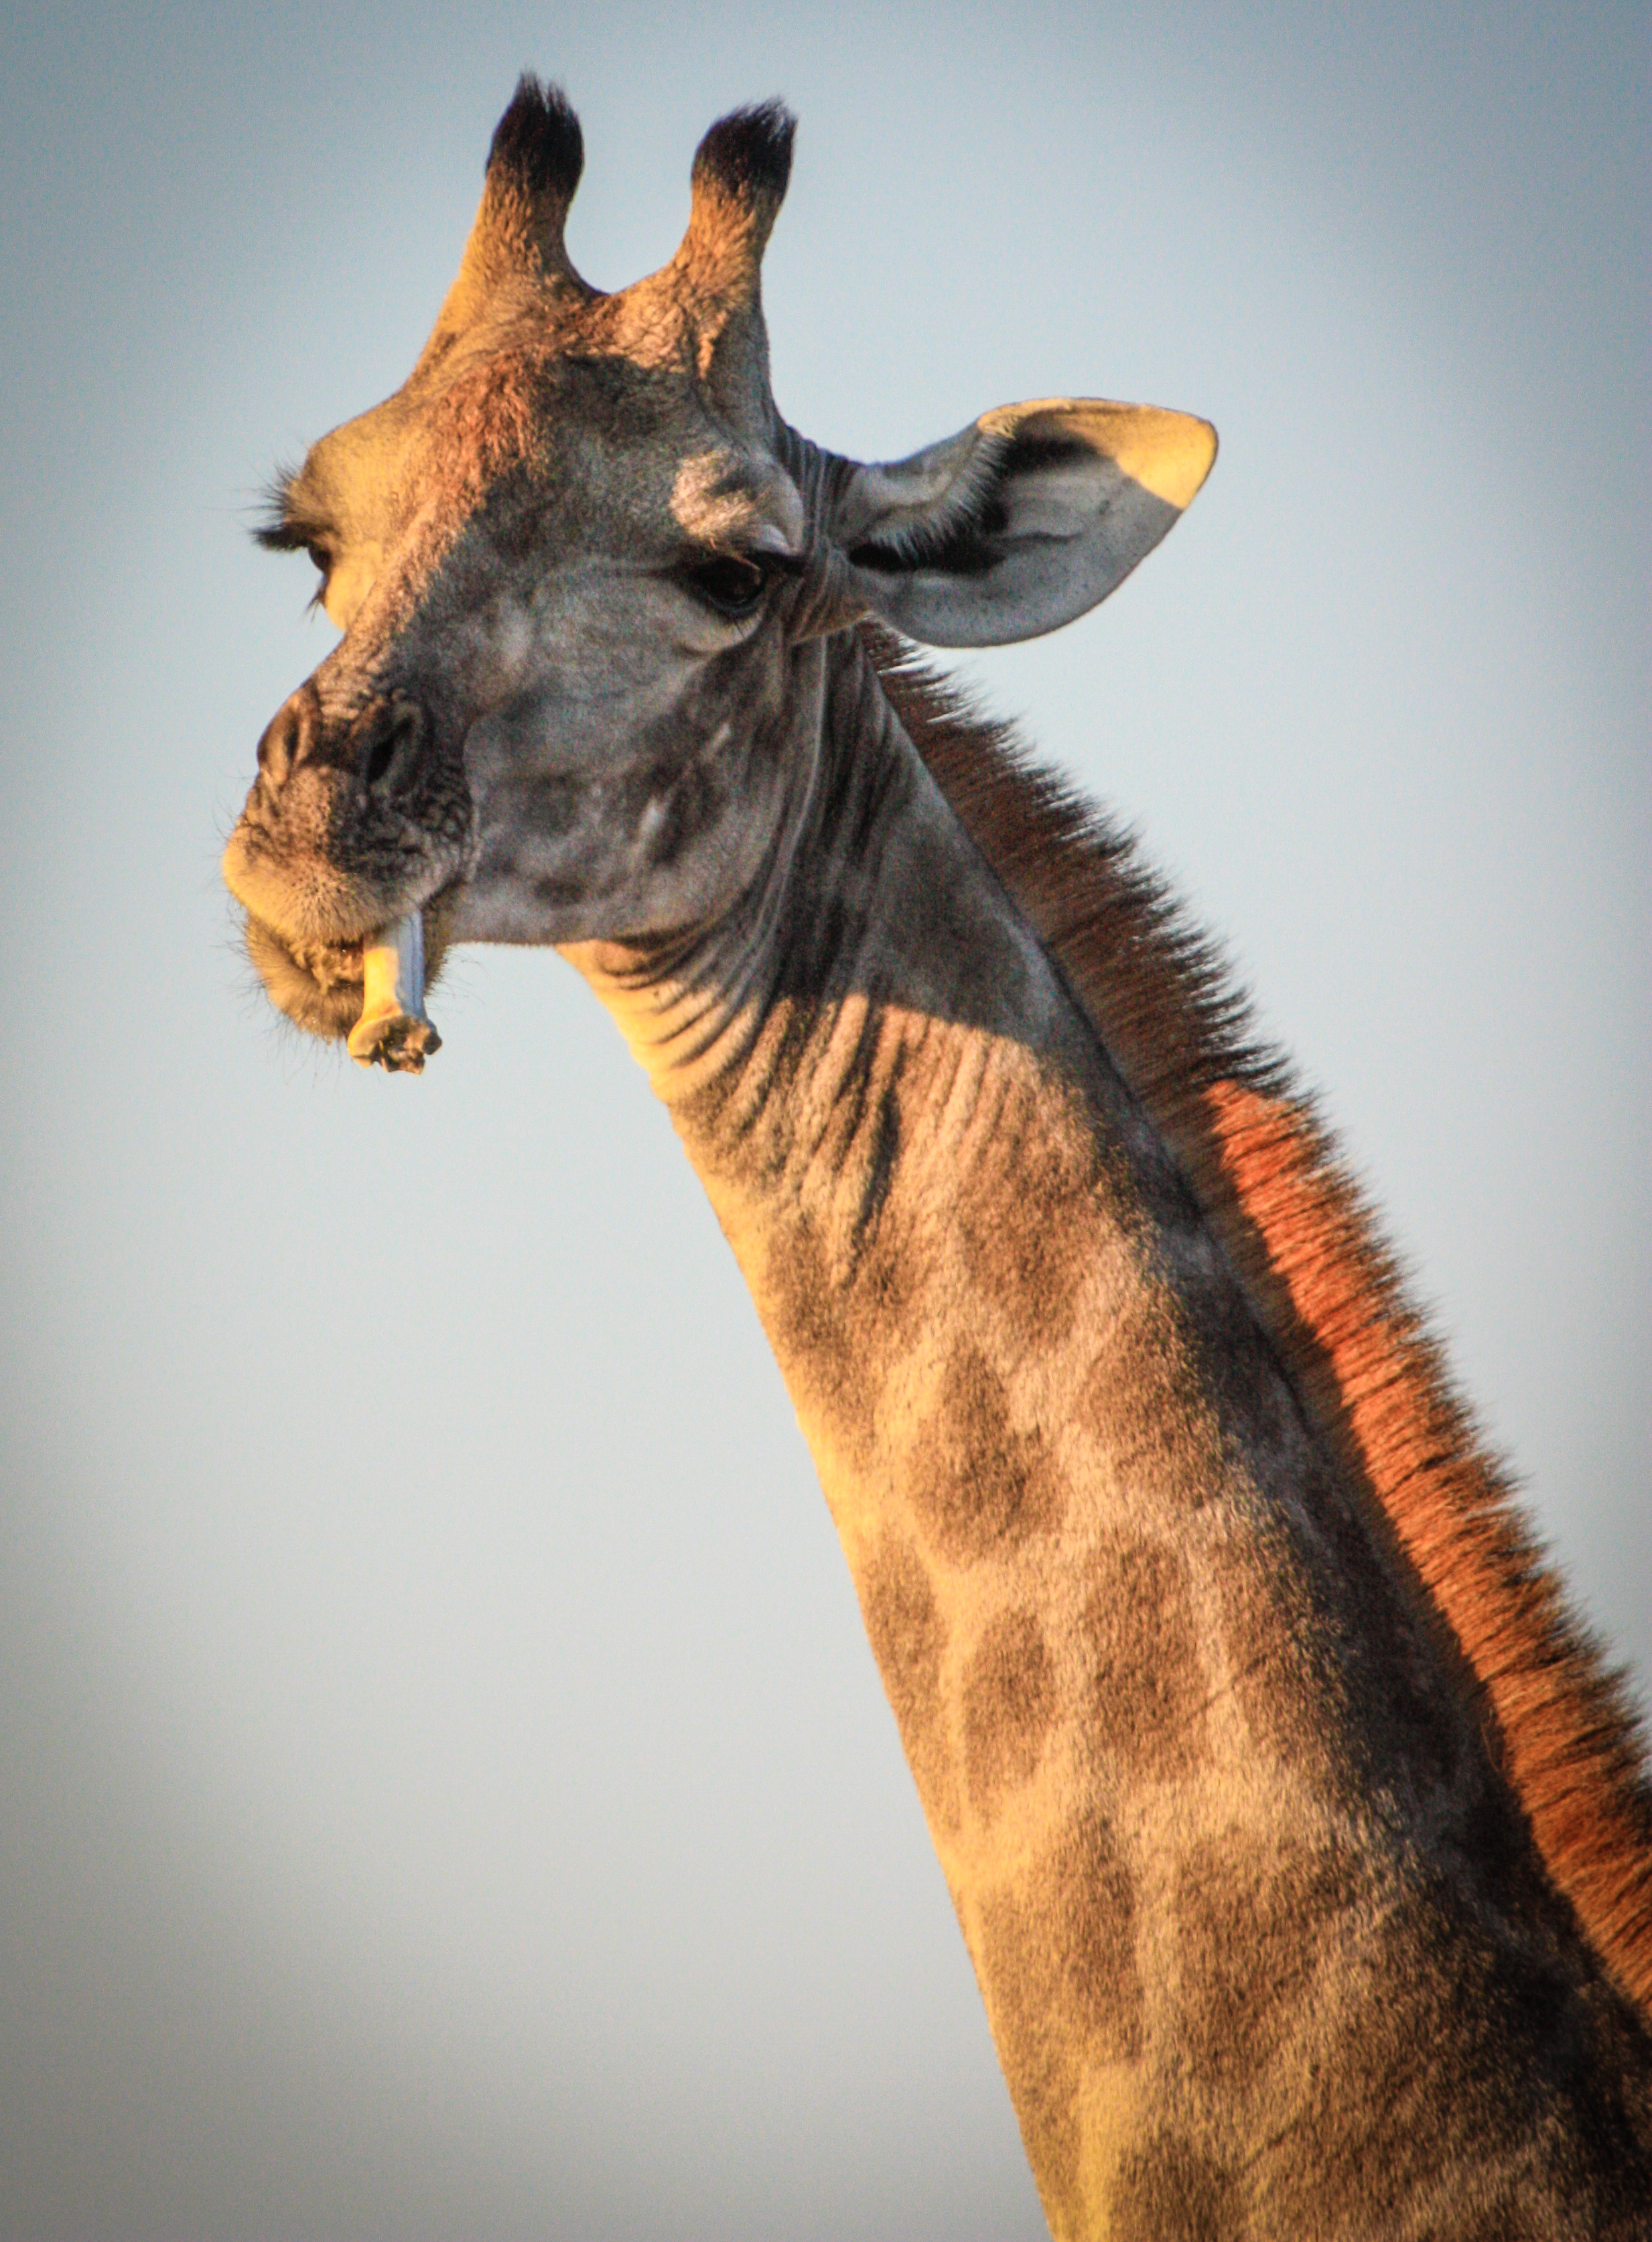 Giraffe sucking on a piece of animal bone - osteophagia. Etosha National Park, Namibia.